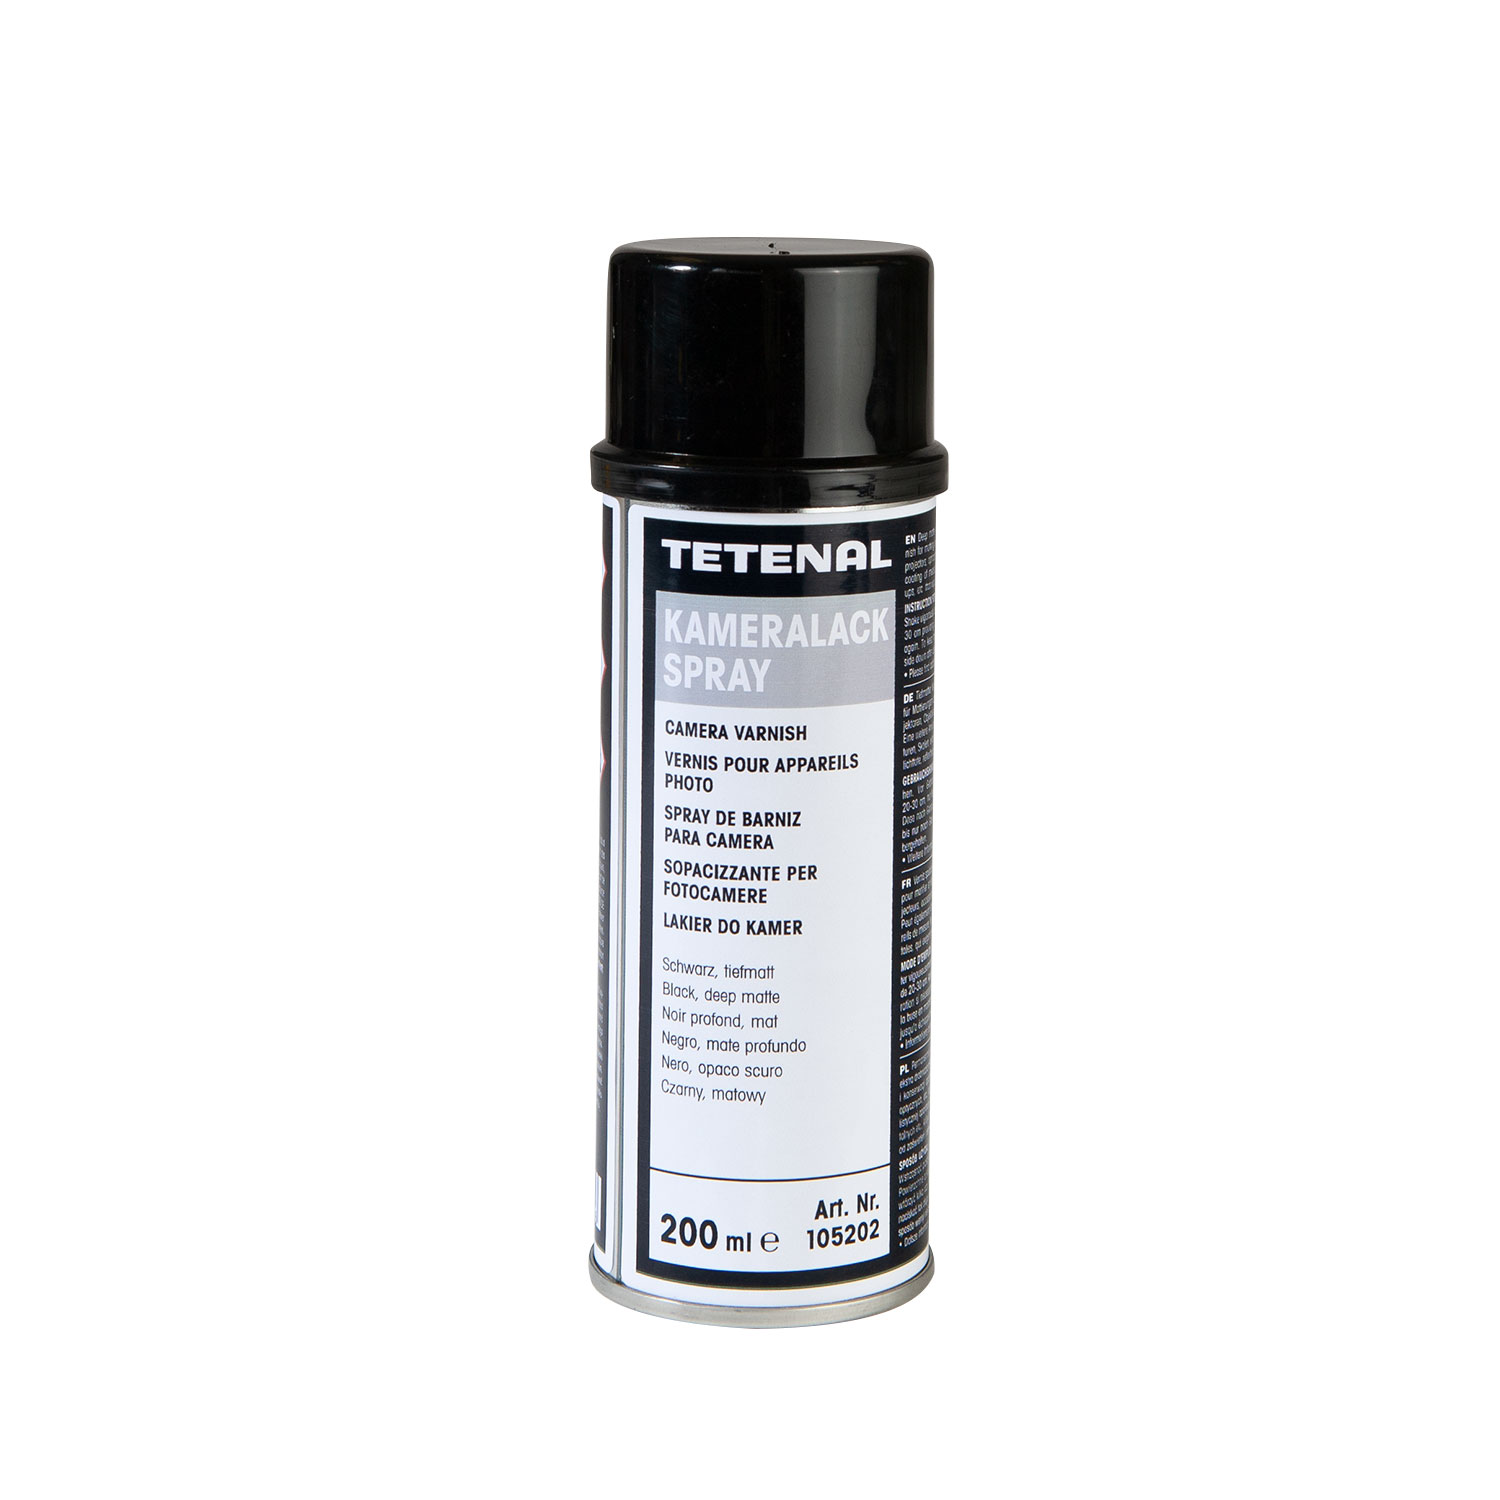 TETENAL camera varnish spray